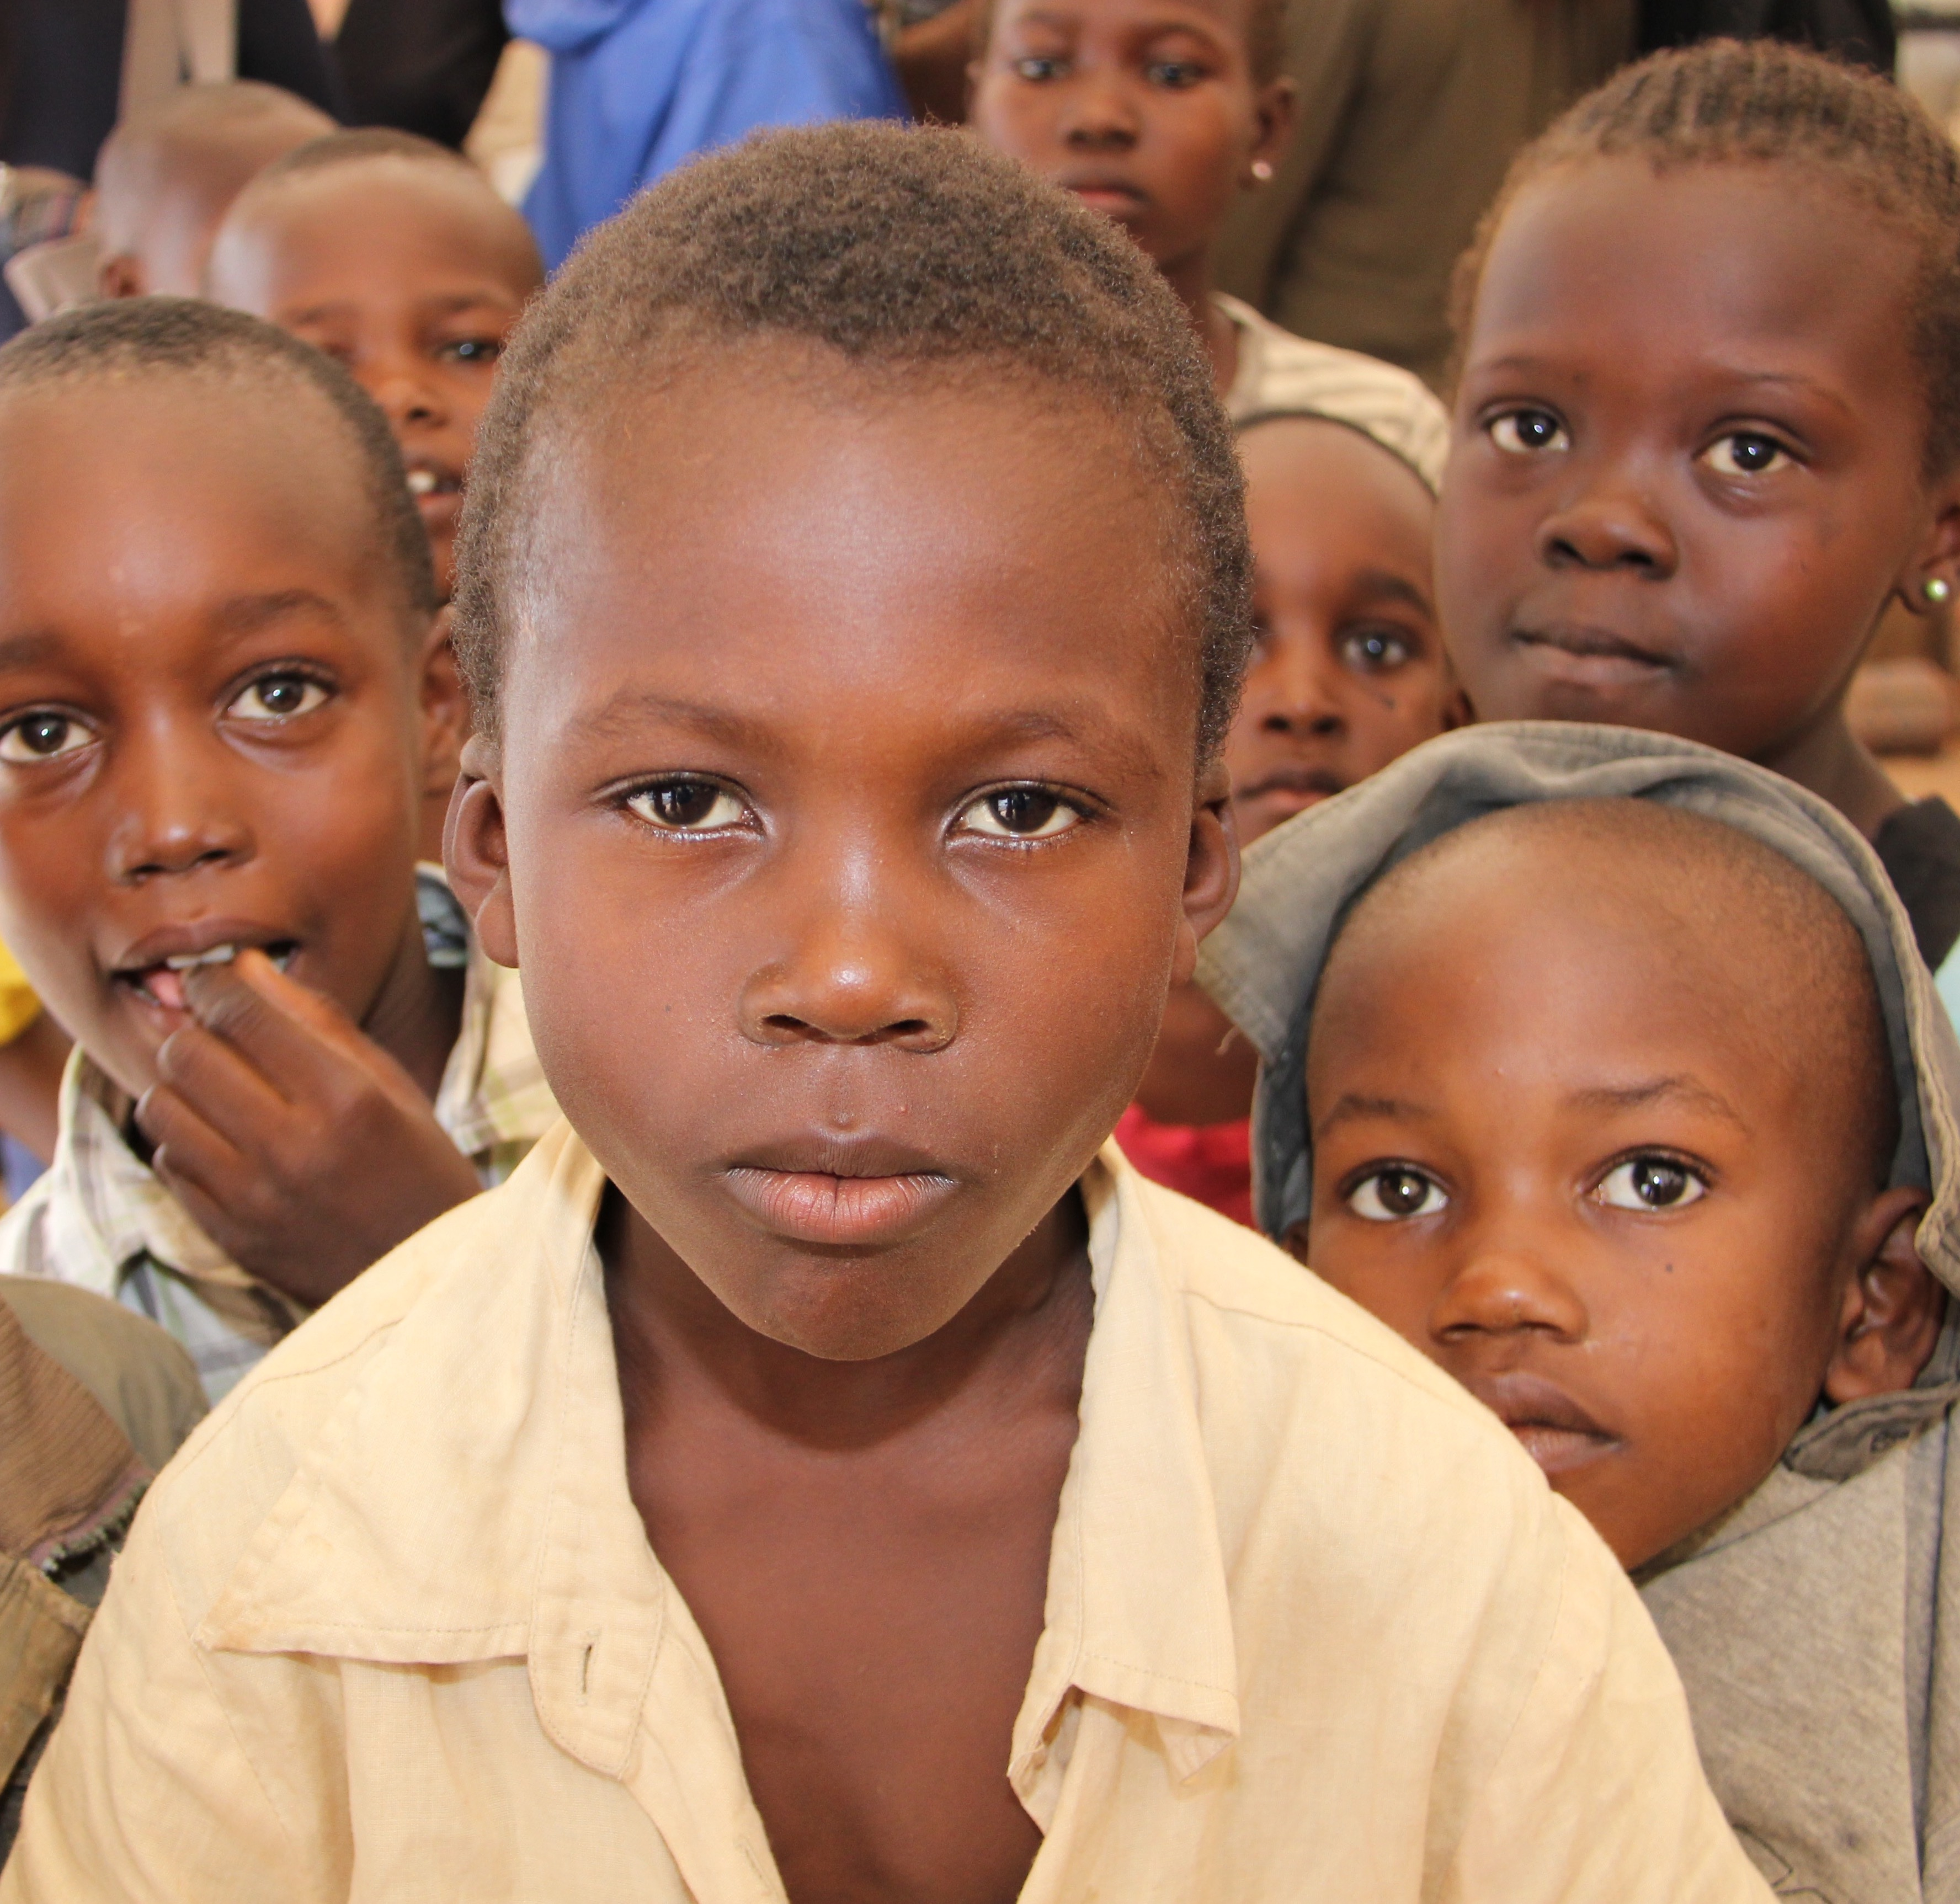 Children in an IDP camp in Central African Republic